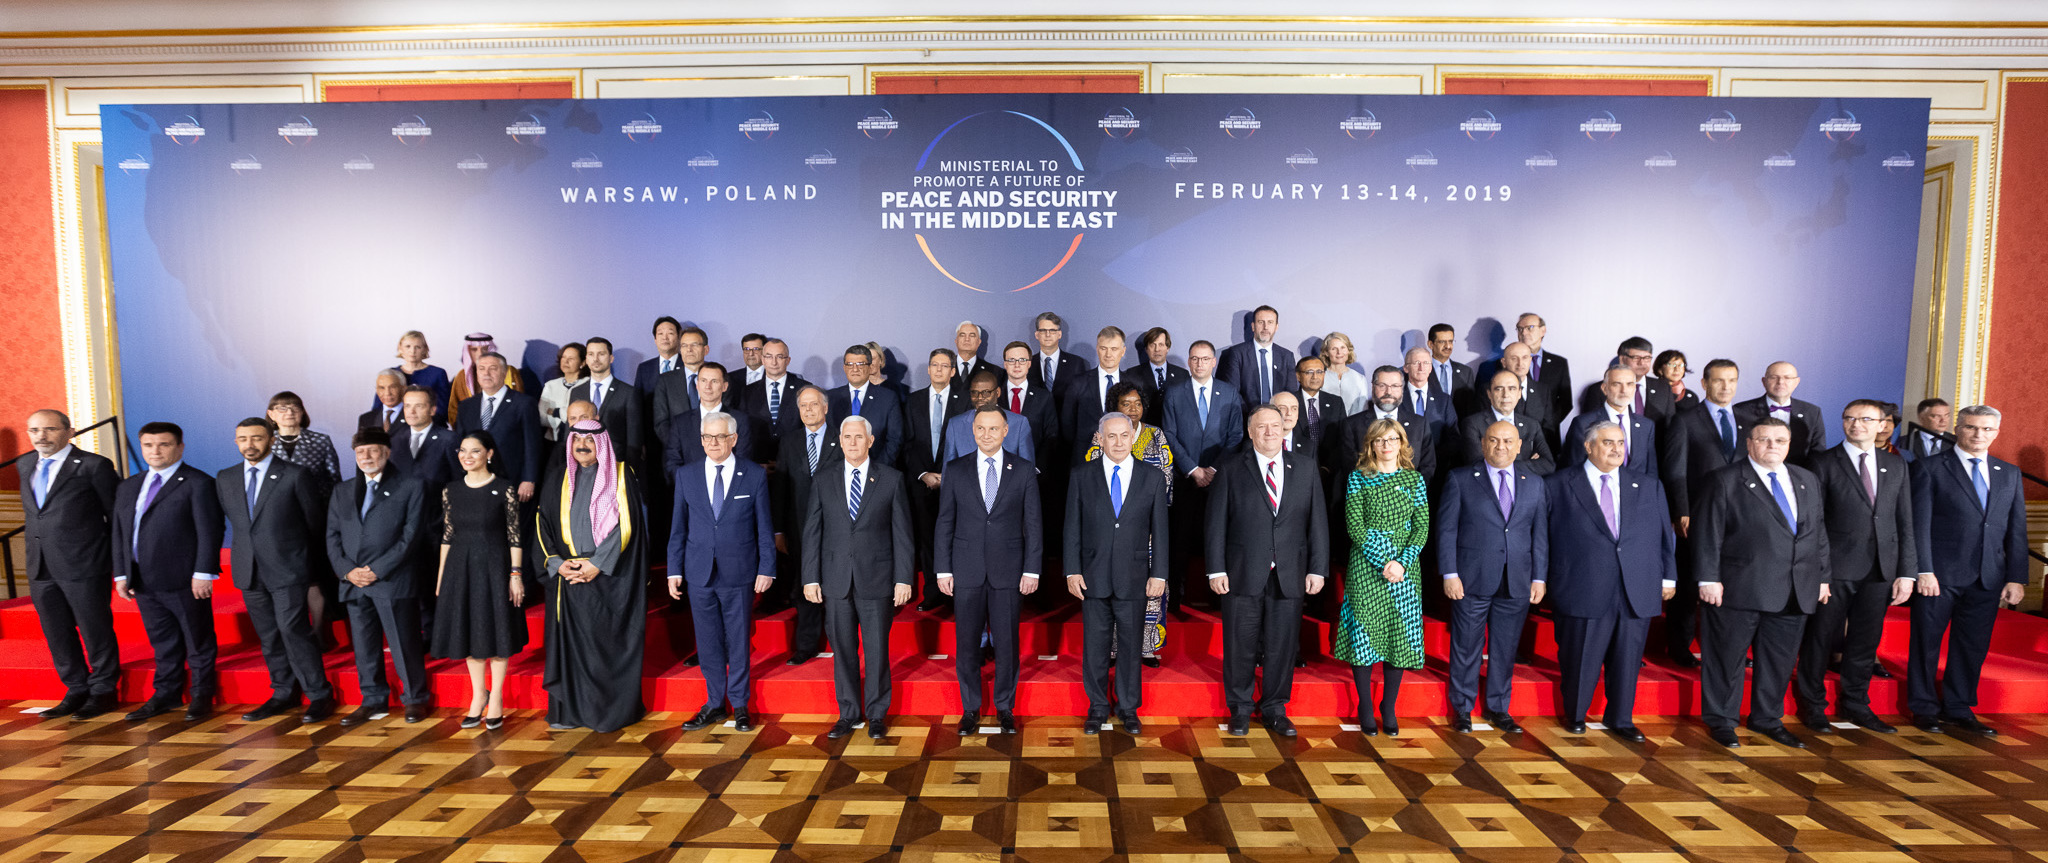 ministerial to promote peace and security in the middle east